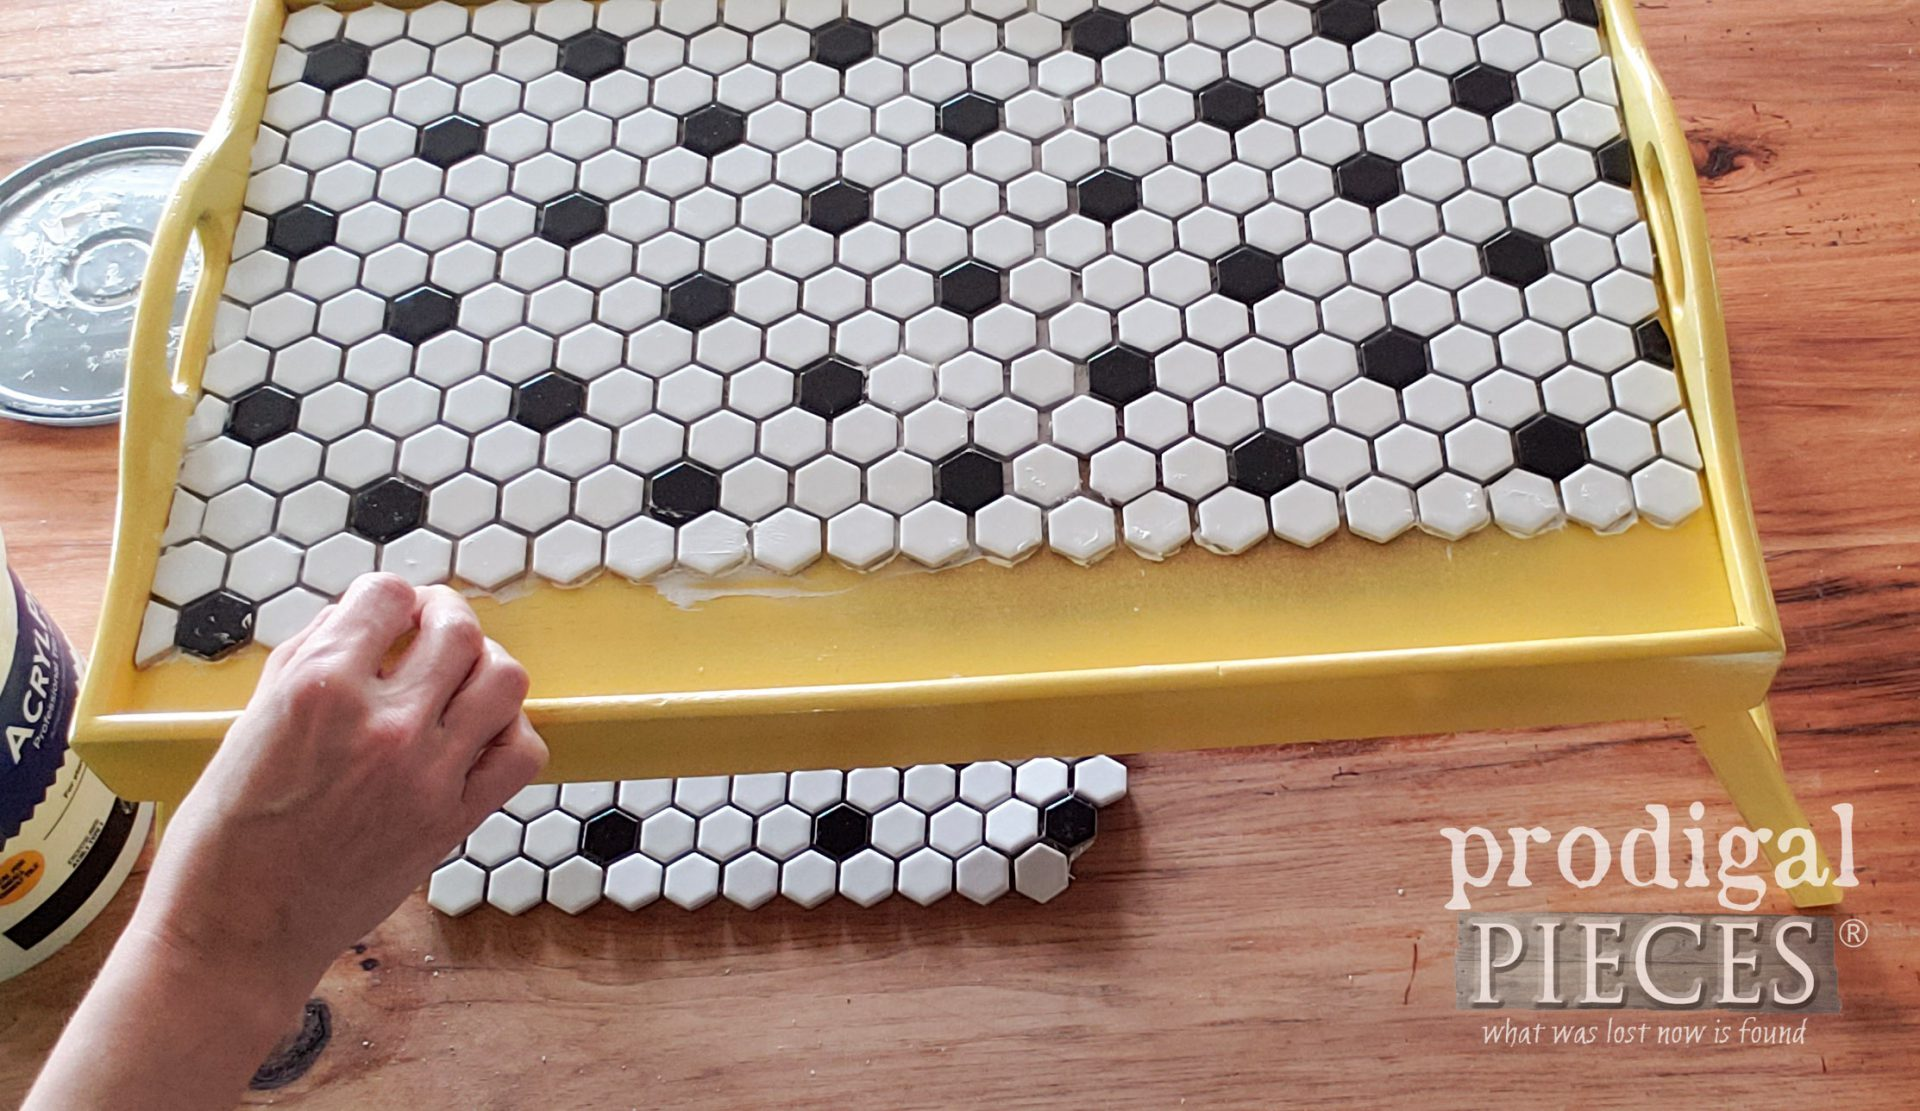 Applying the Tile to DIY Tiled Tray by Larissa of Prodigal Pieces | prodigalpieces.com